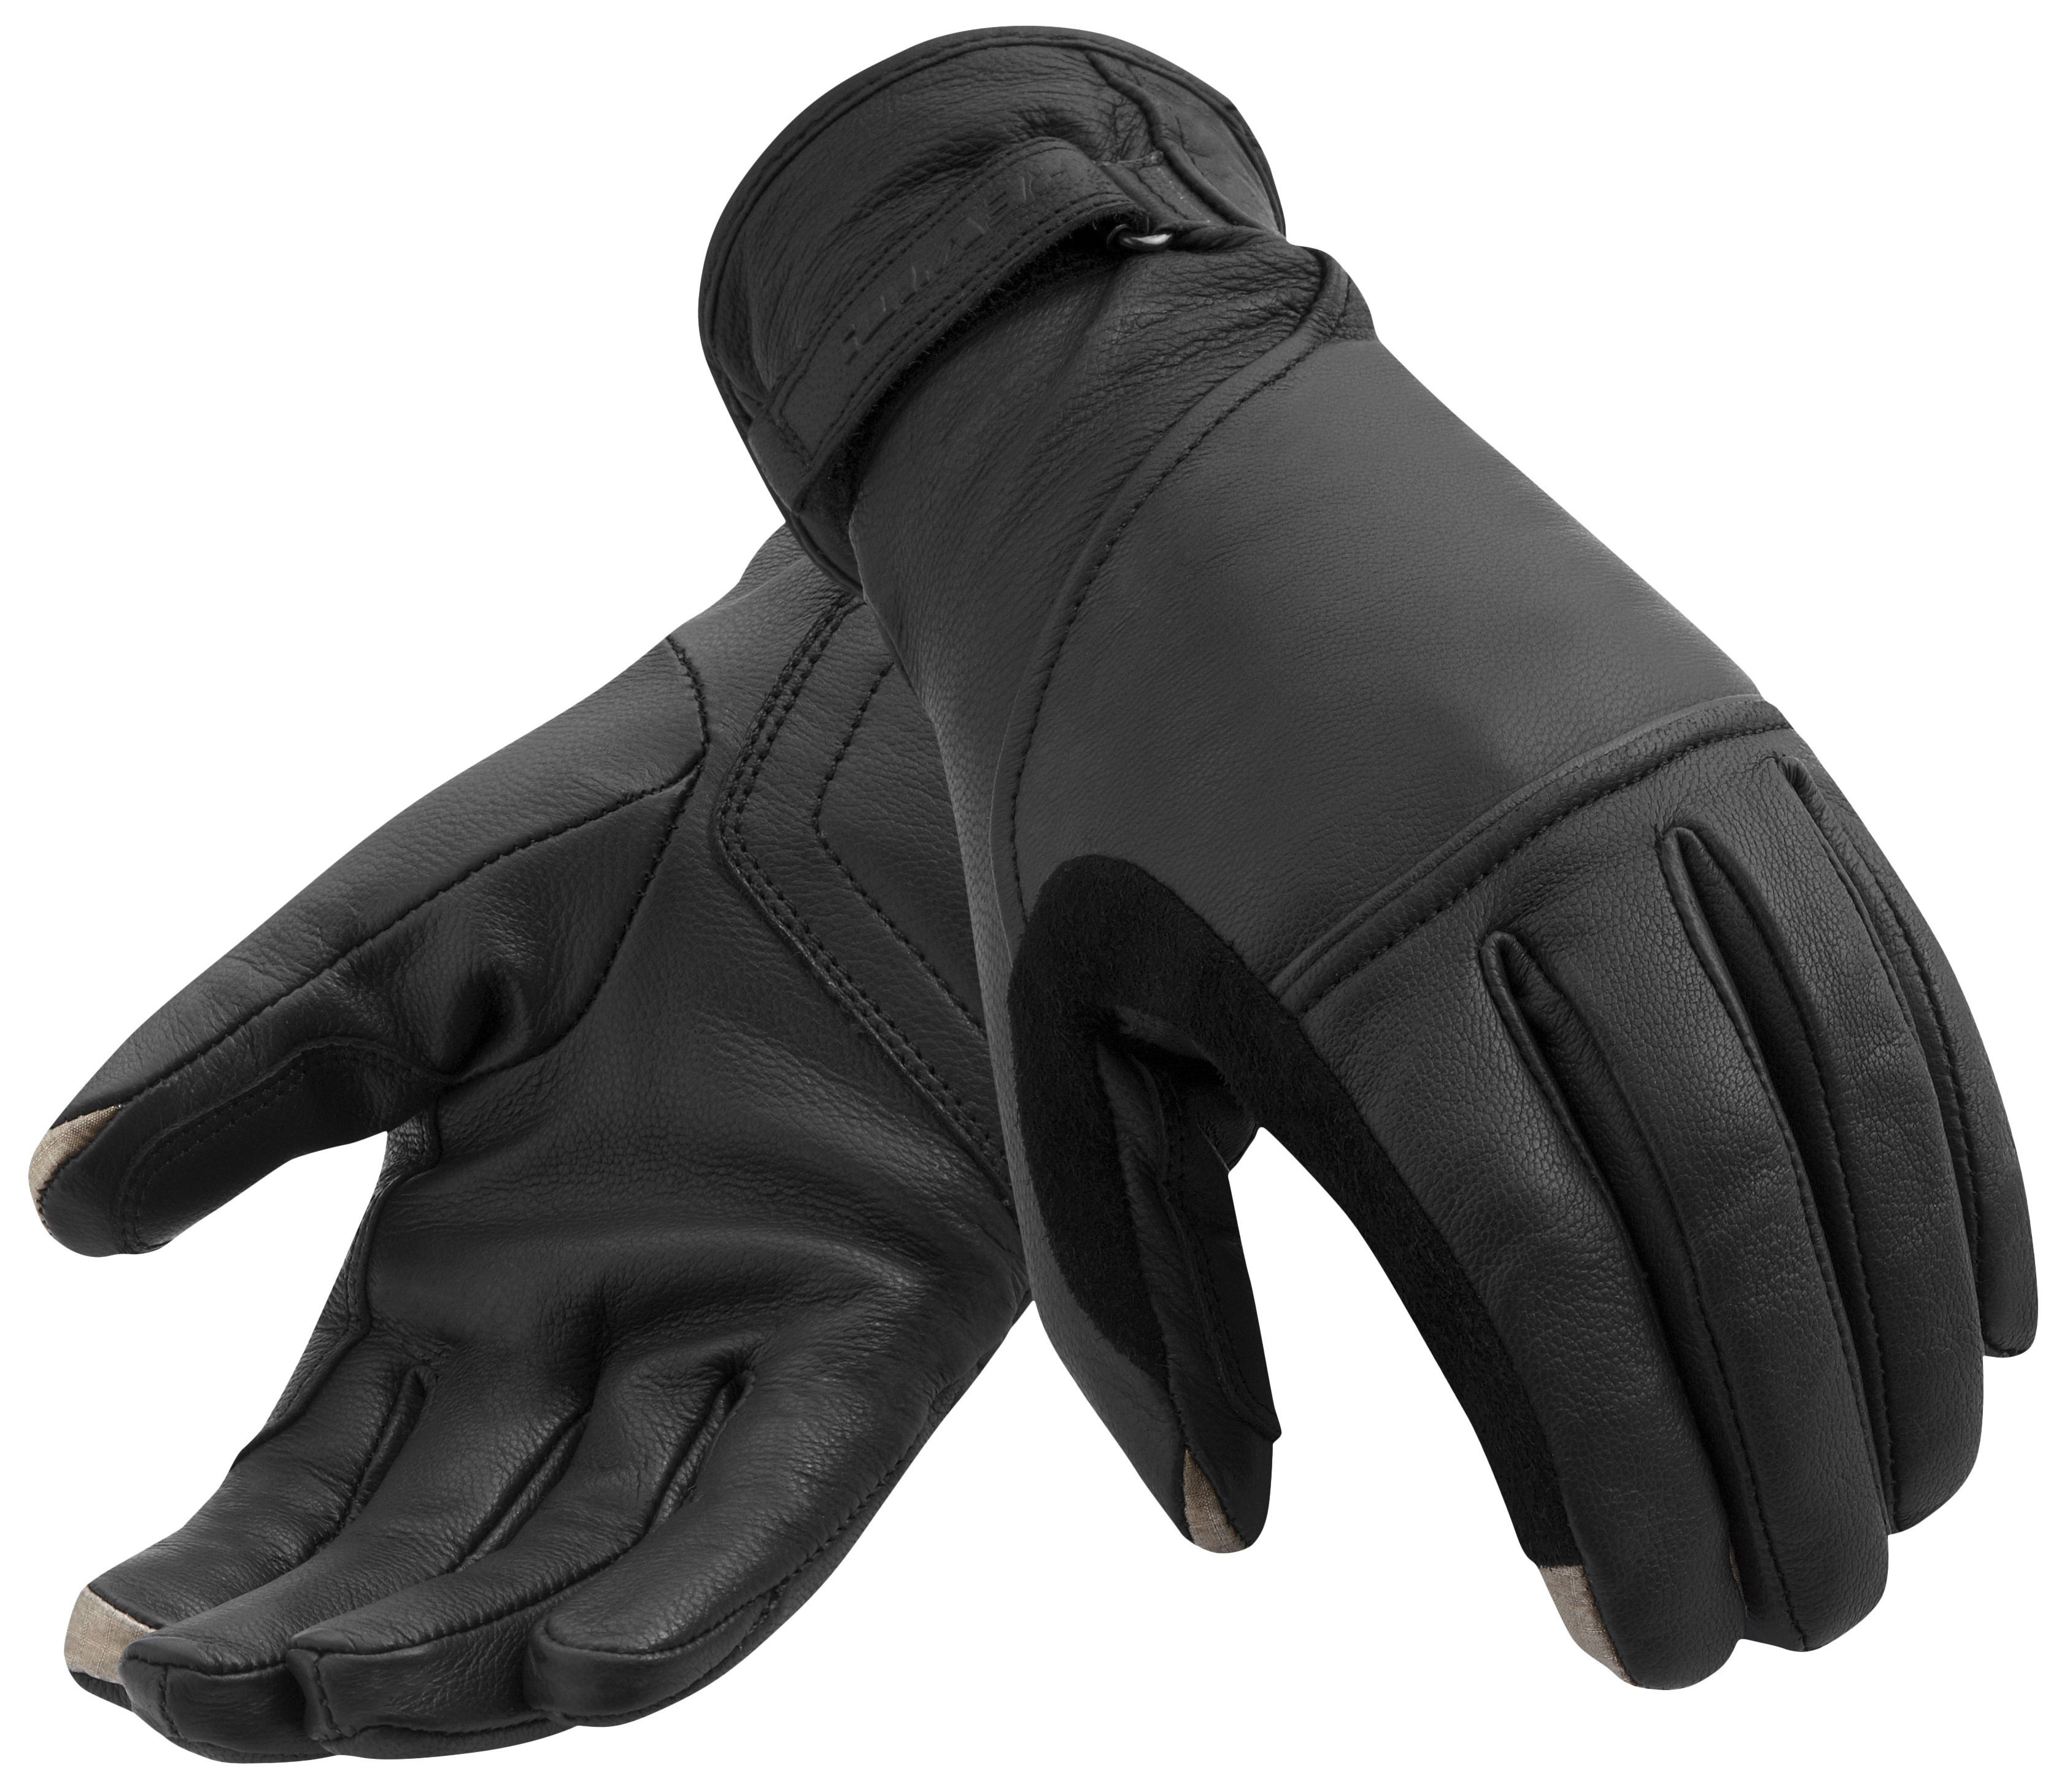 Black leather gloves meaning - Nassau H2o Gloves Revzilla